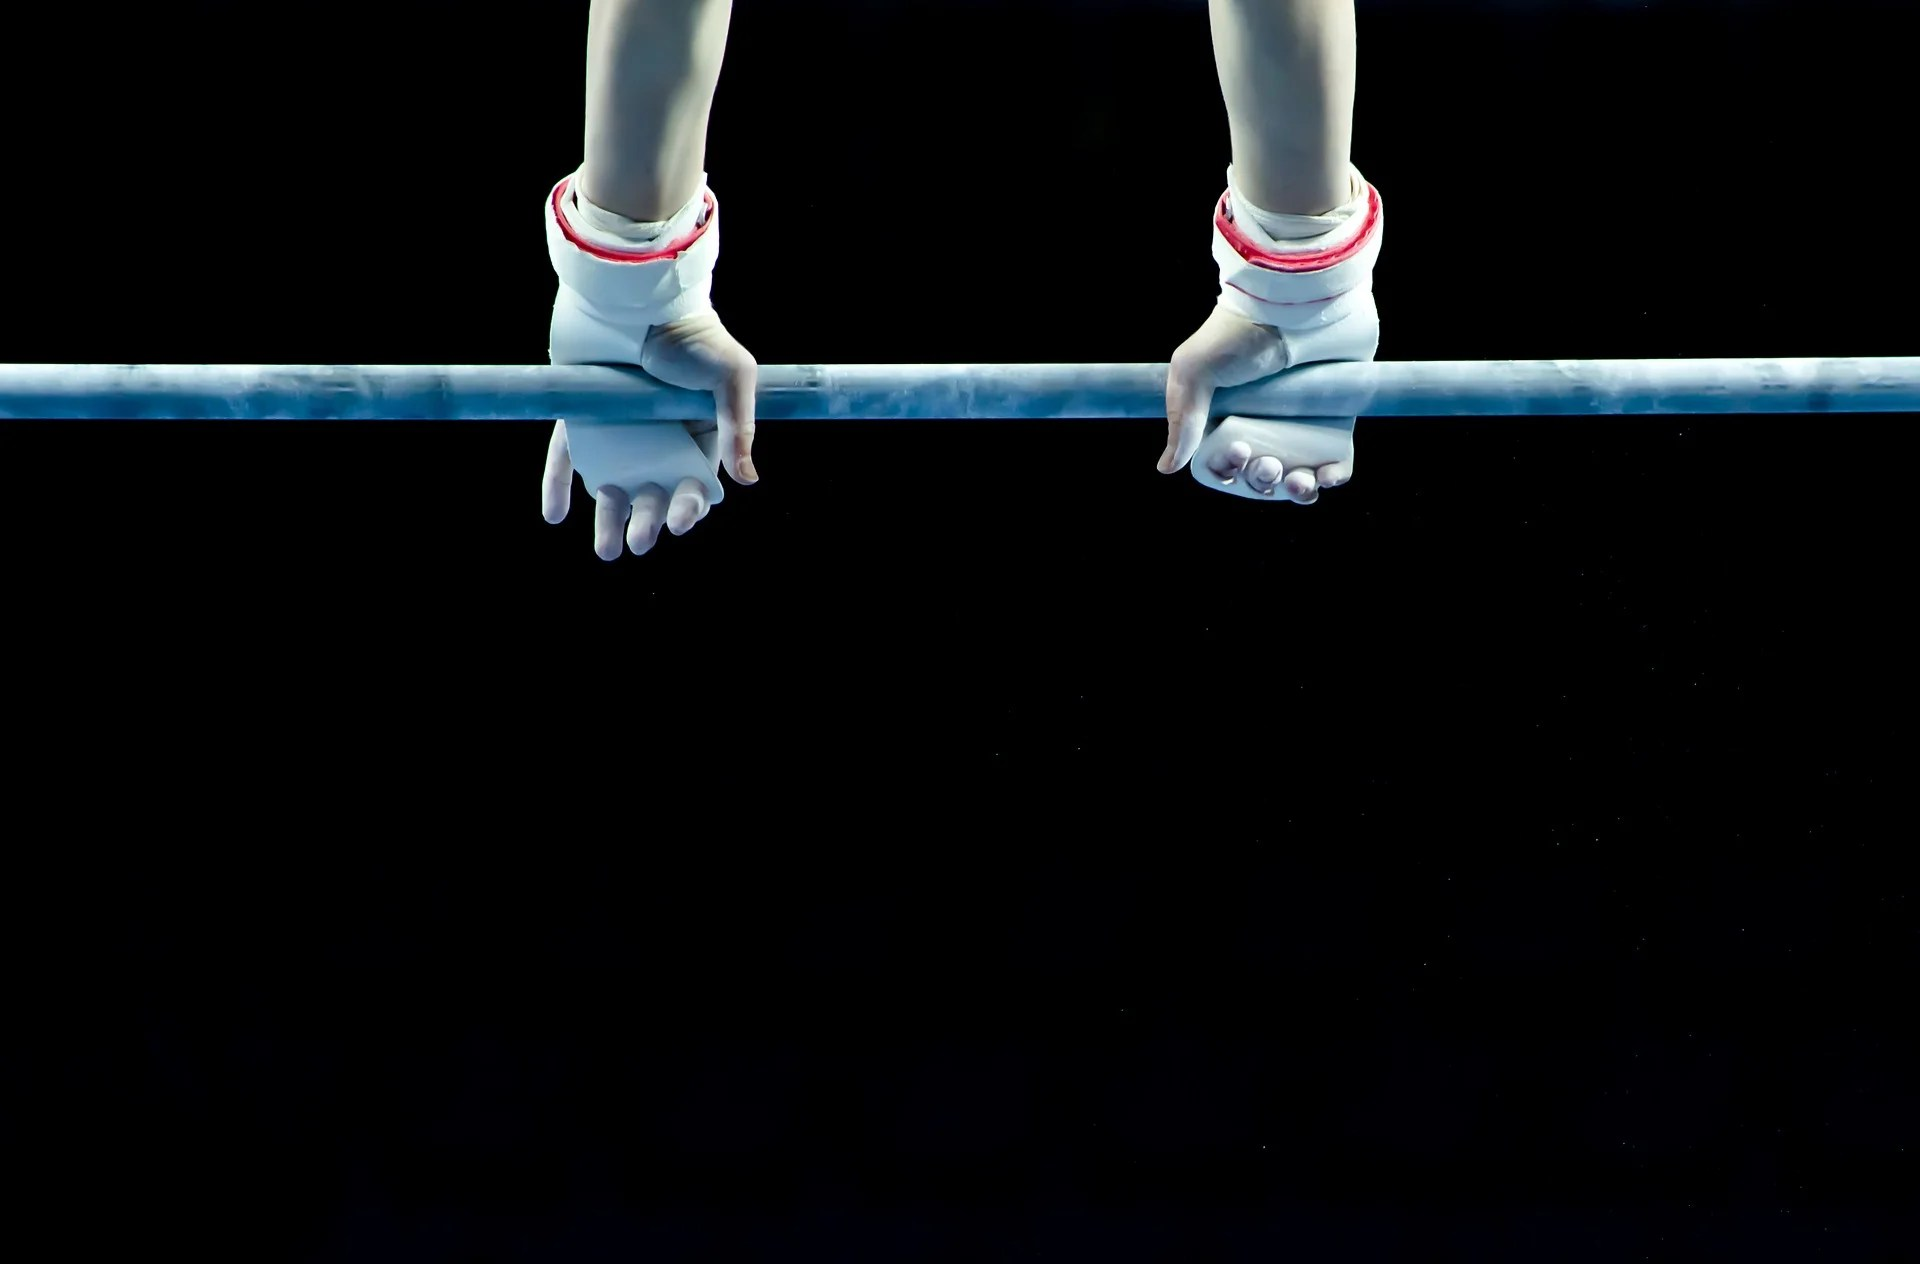 Elite Gymnast, Who Is Homeschooled, On Bars